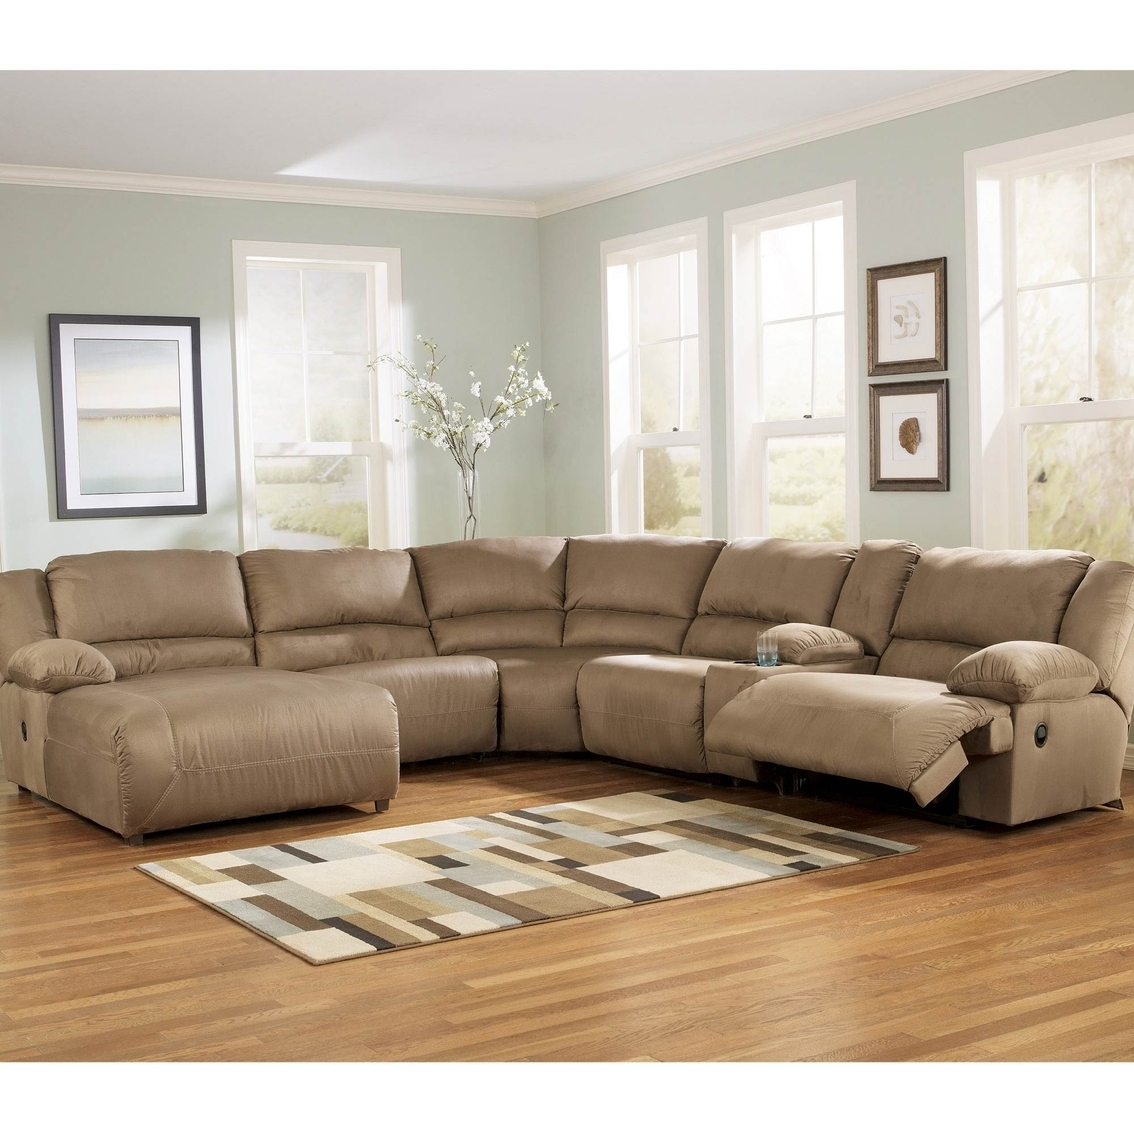 Well Liked Ashley Hogan Sectional With Two Recliners And Right Arm Facing In Chaise Recliners (View 8 of 15)